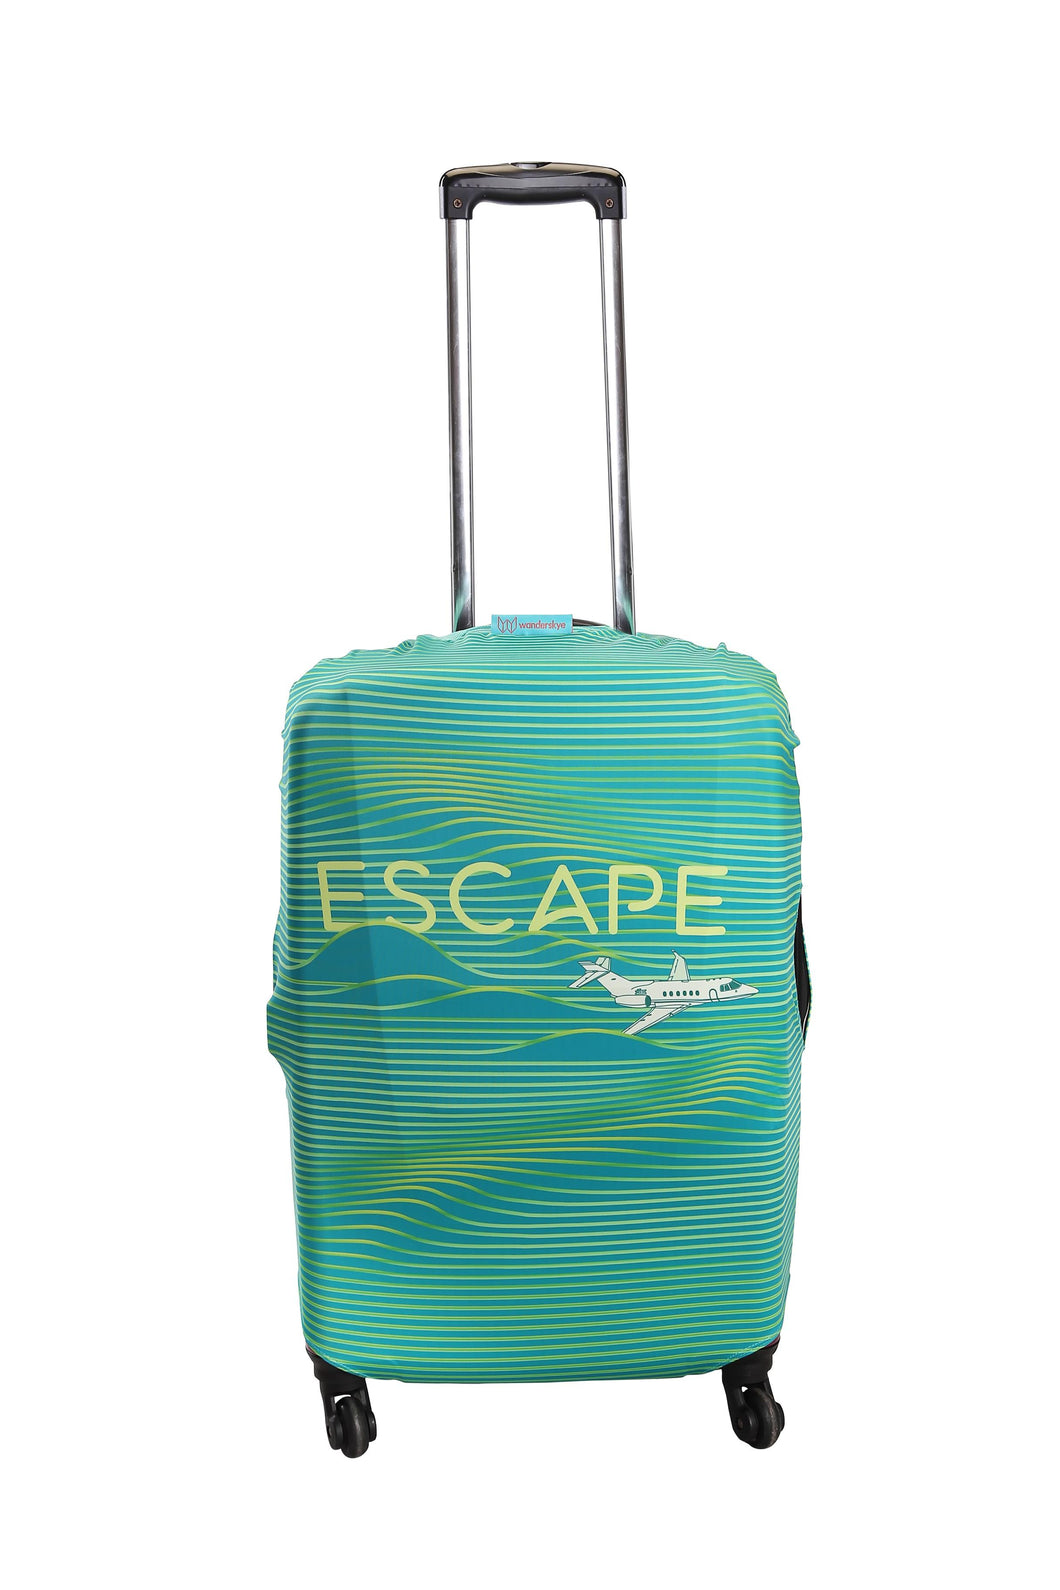 3D Style Luggage Cover